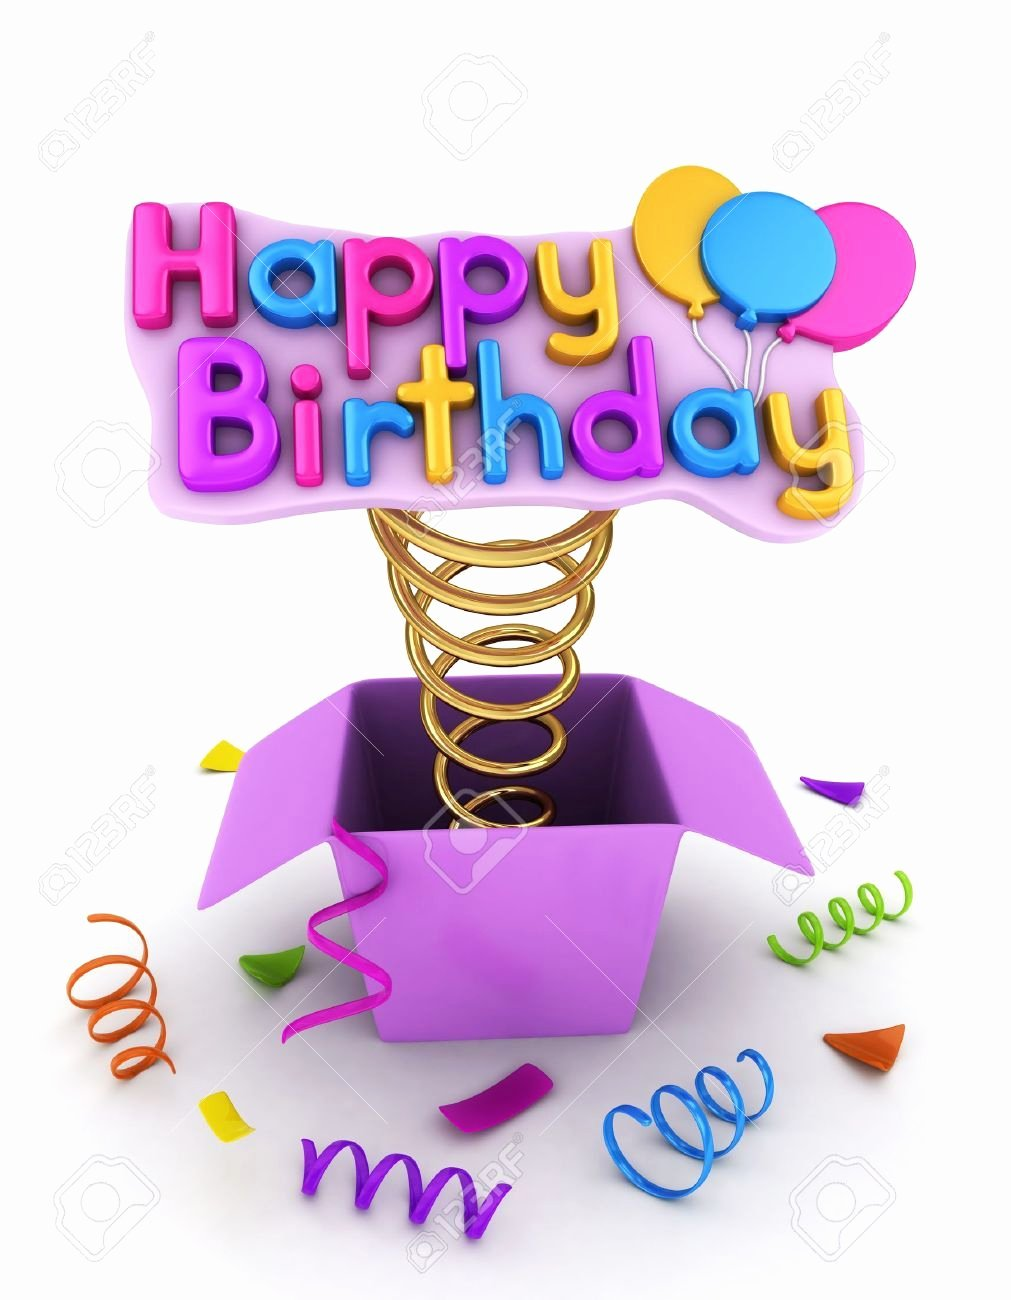 Happy Birthday 3d Images Inspirational 3d Illustration Of A Gift Box with A Pop Up Happy